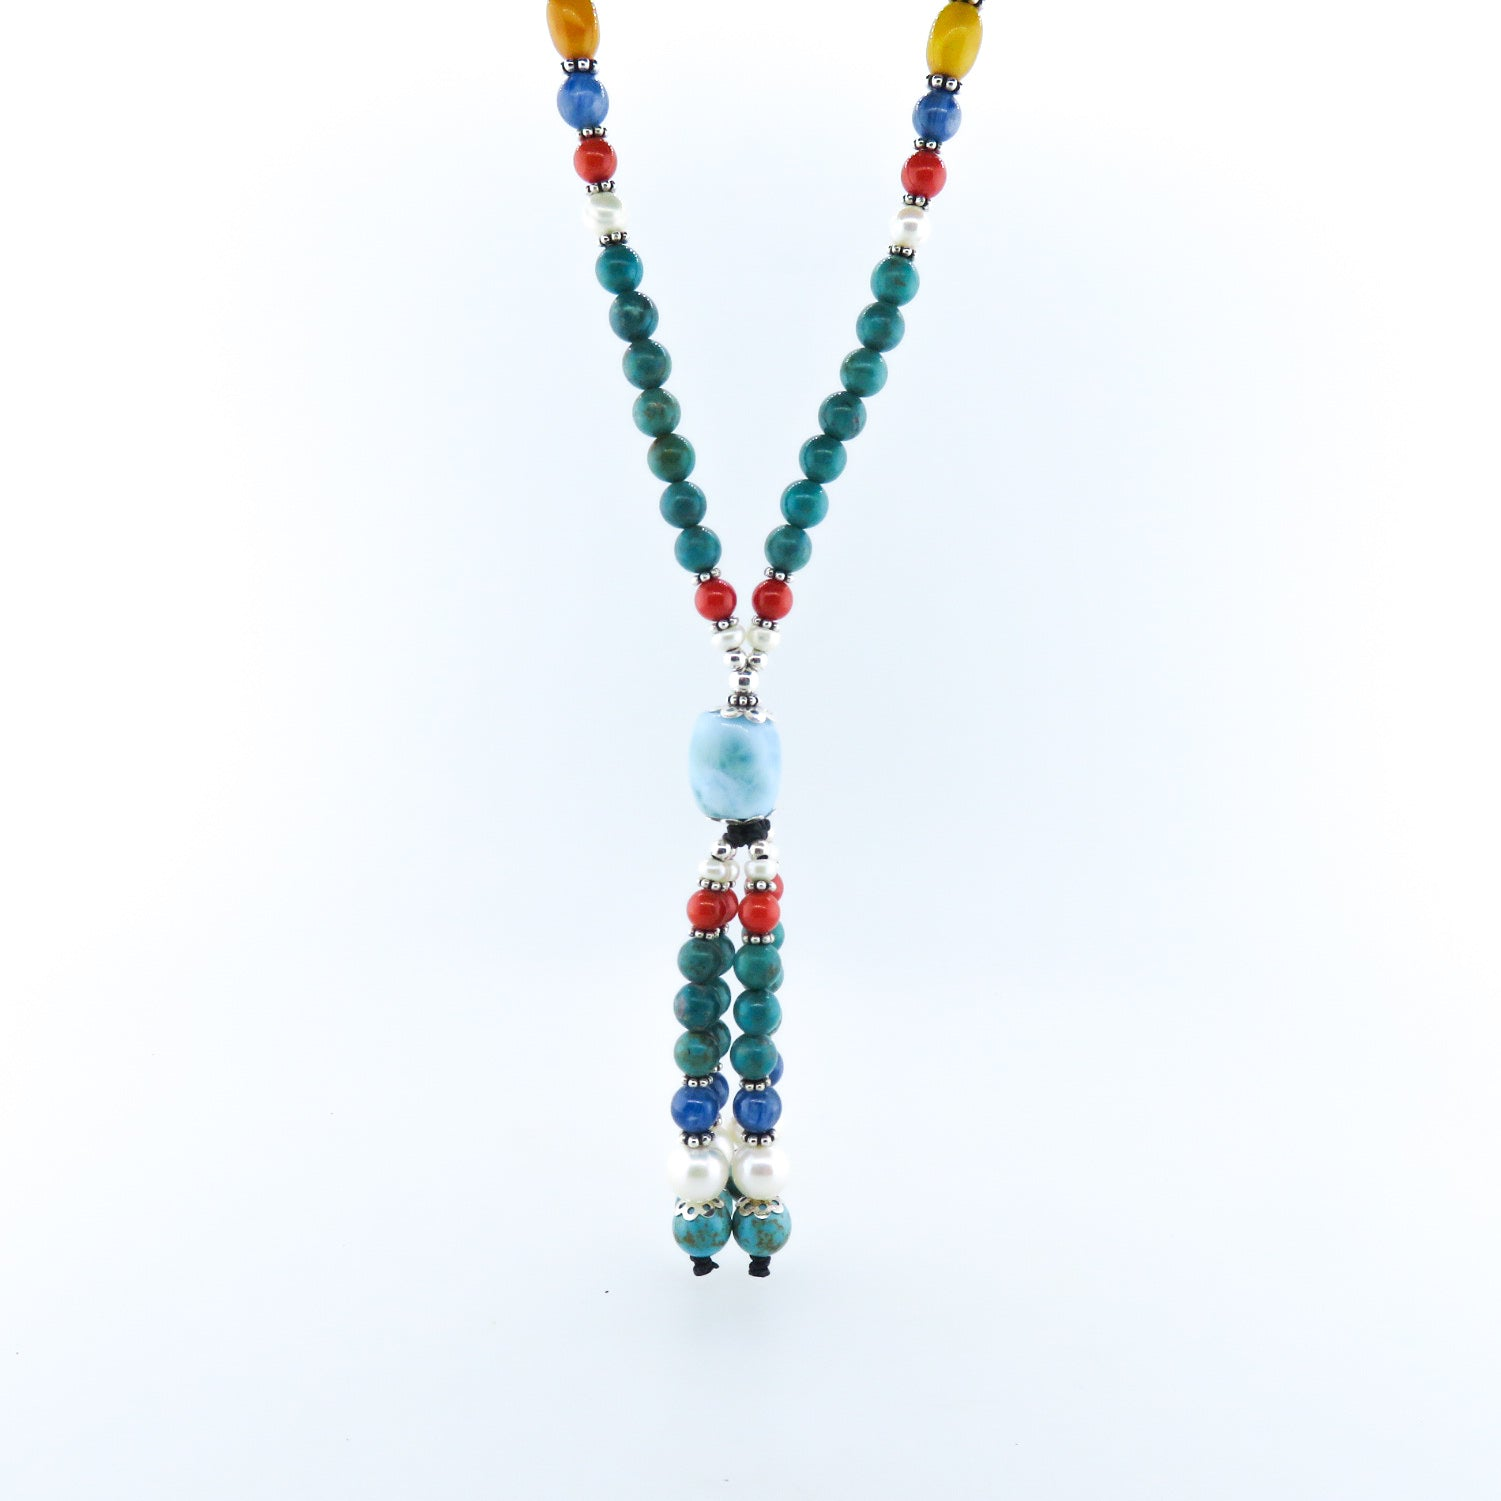 Turquoise Beads Necklace with Larimar Stone, Amber, Red Coral, Kyanite, Fresh Water Pearls and Silver Beads